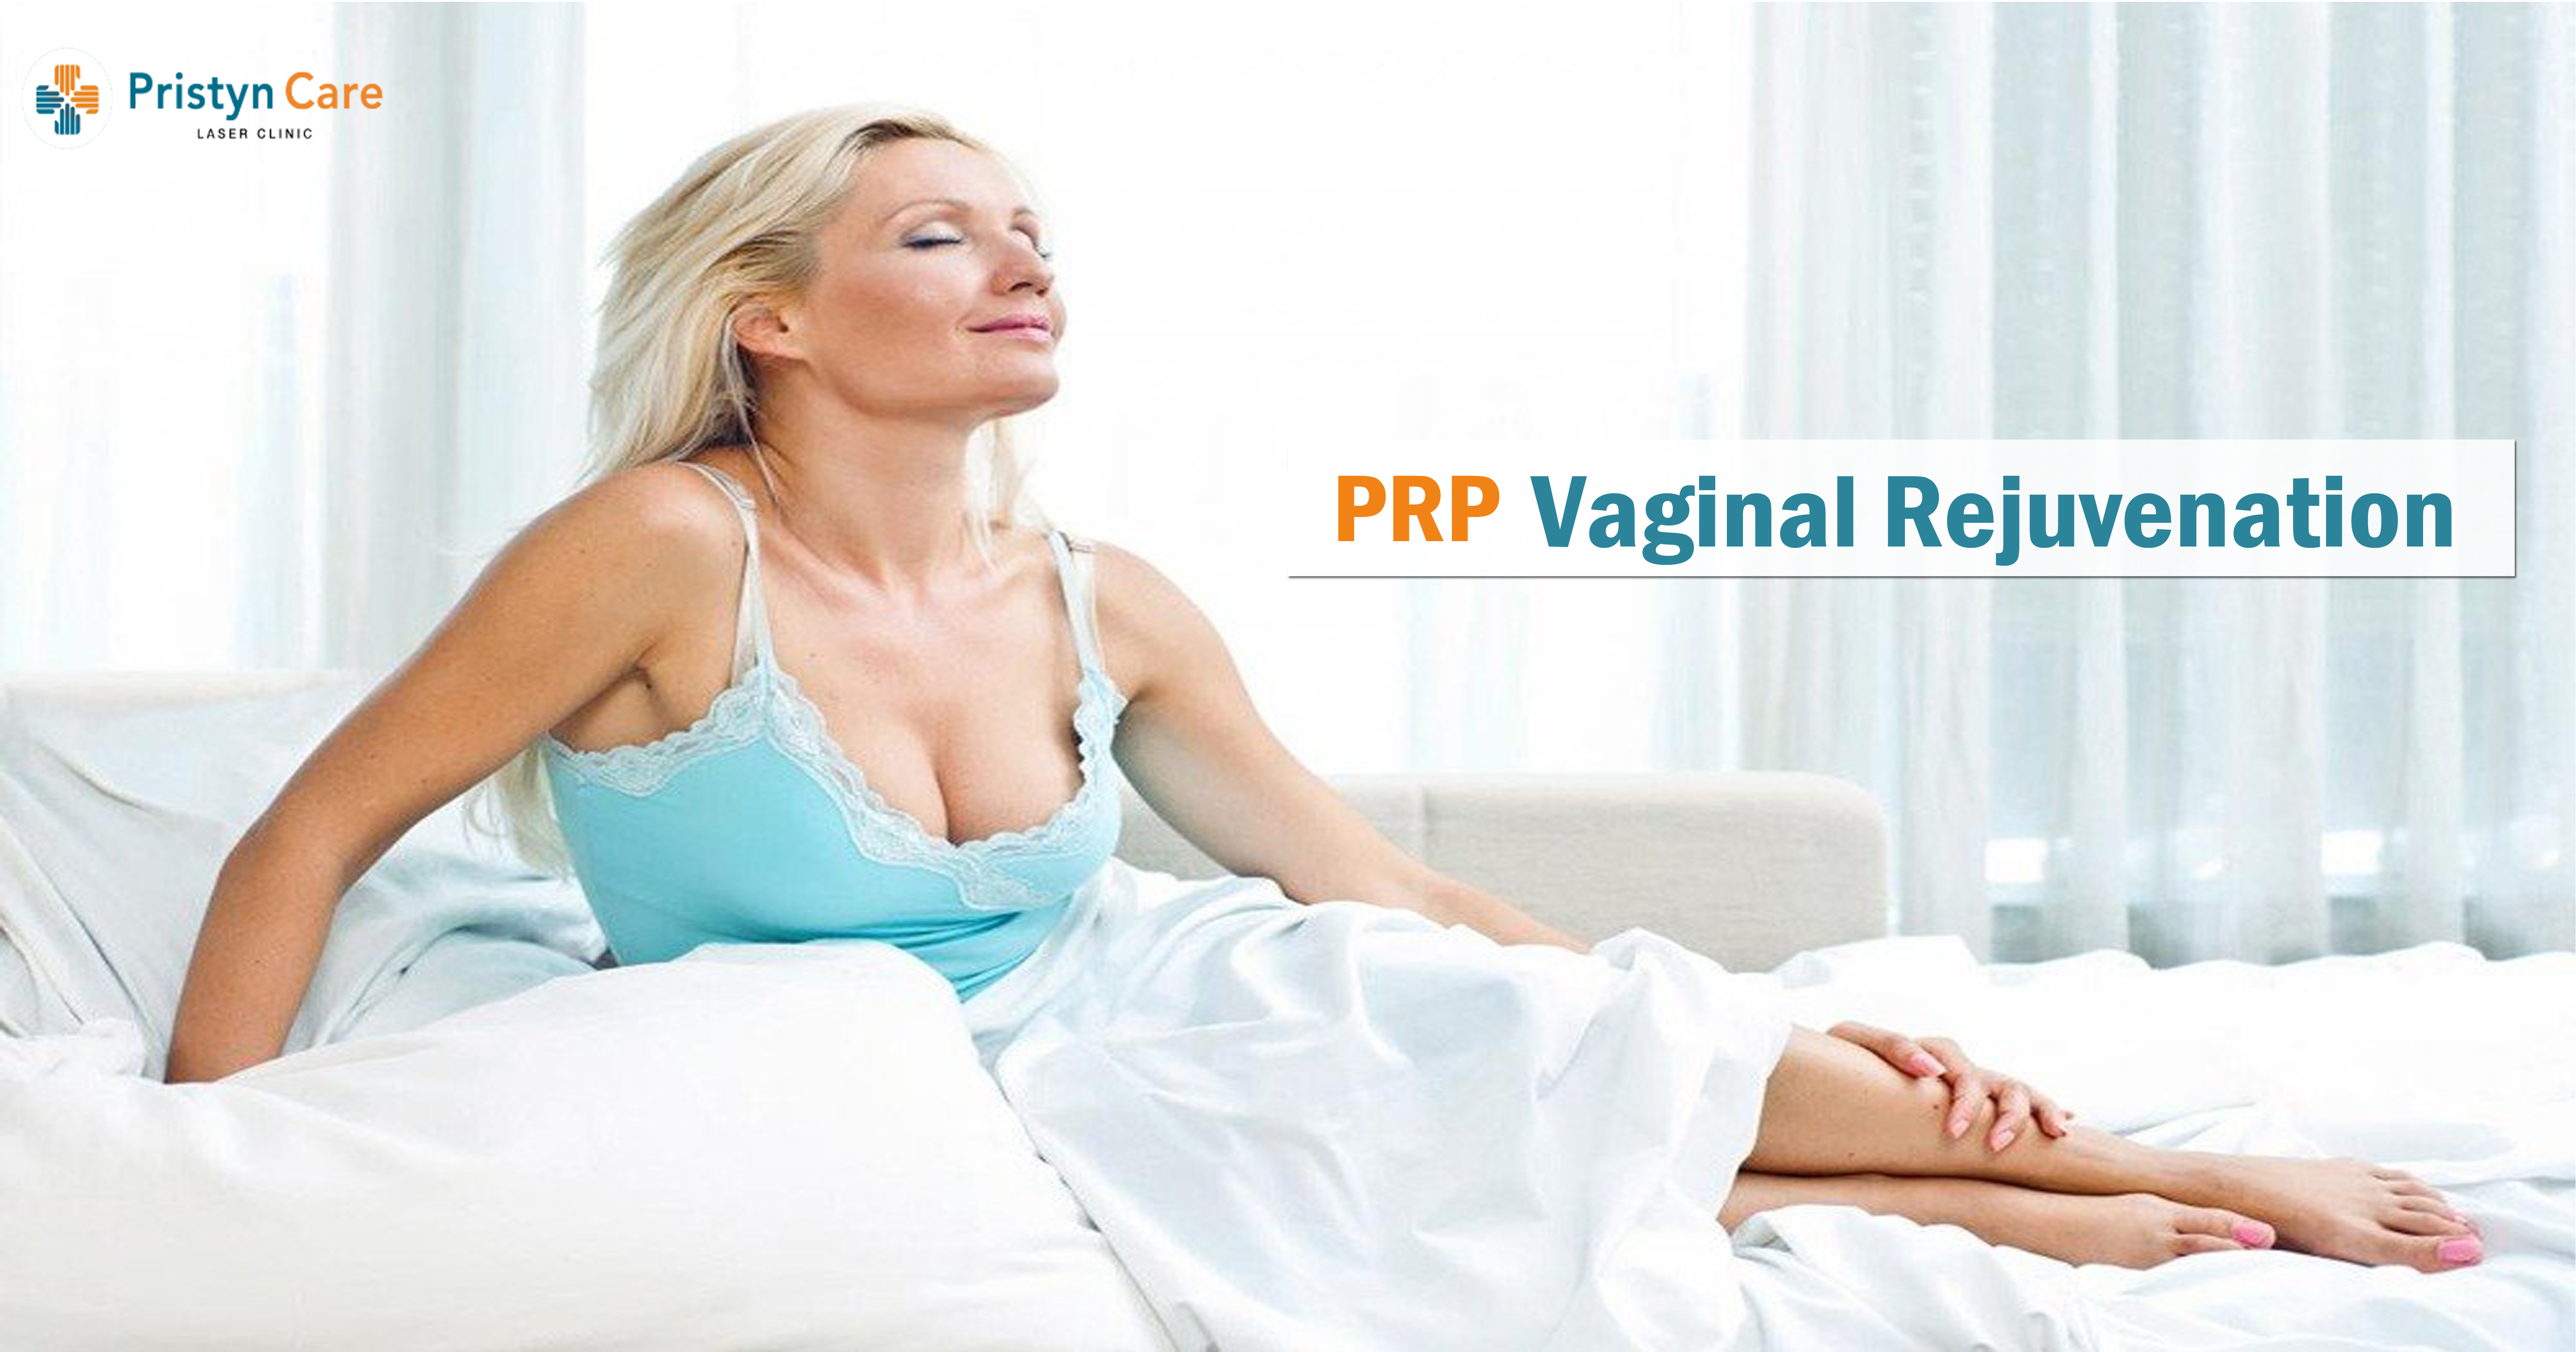 P.R.P. VAGINAL REJUVENATION